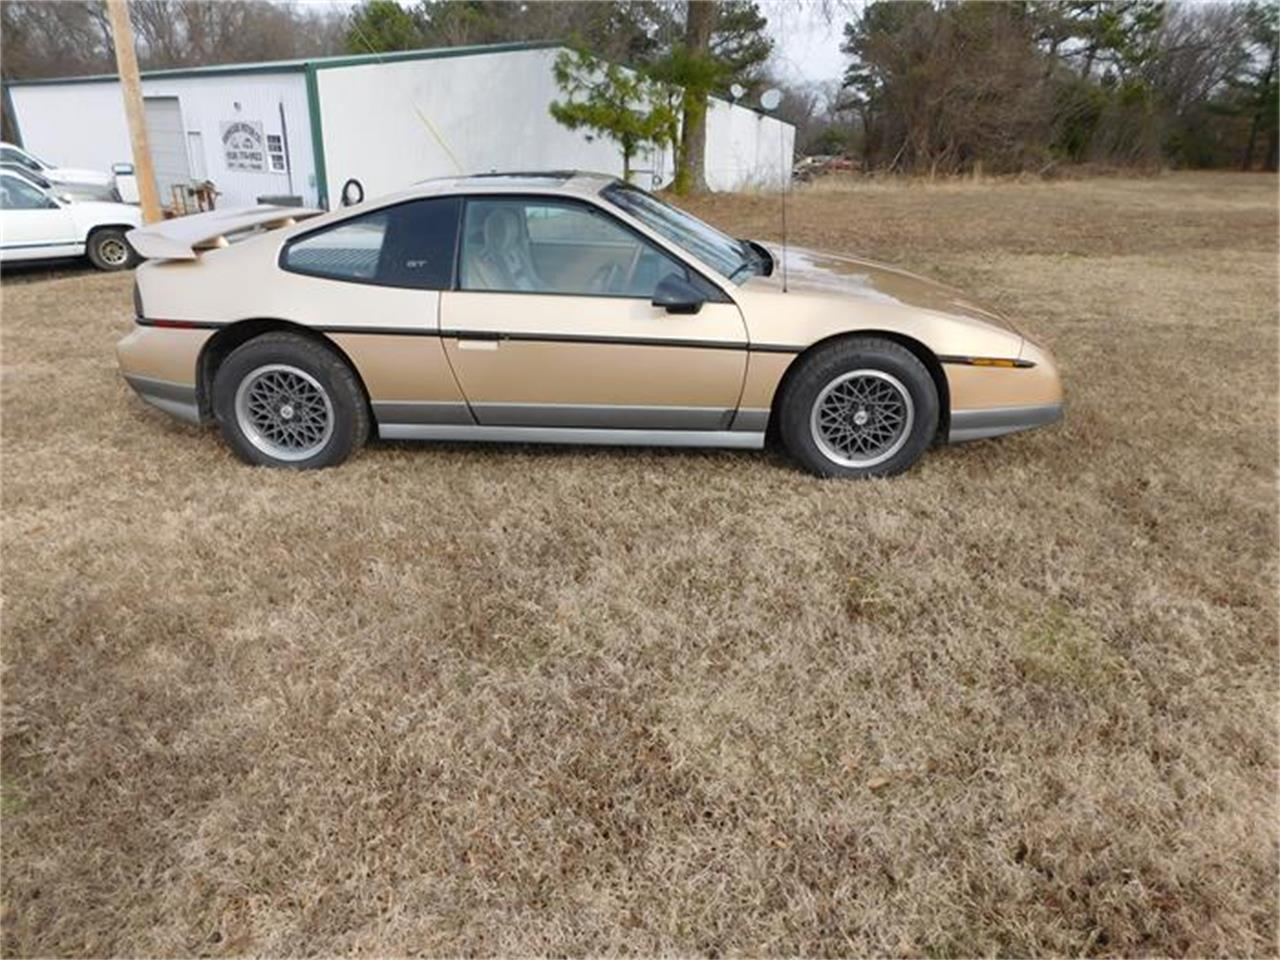 Large Picture of 1987 Pontiac Fiero located in Sallisaw Oklahoma - $8,000.00 - G8Z8